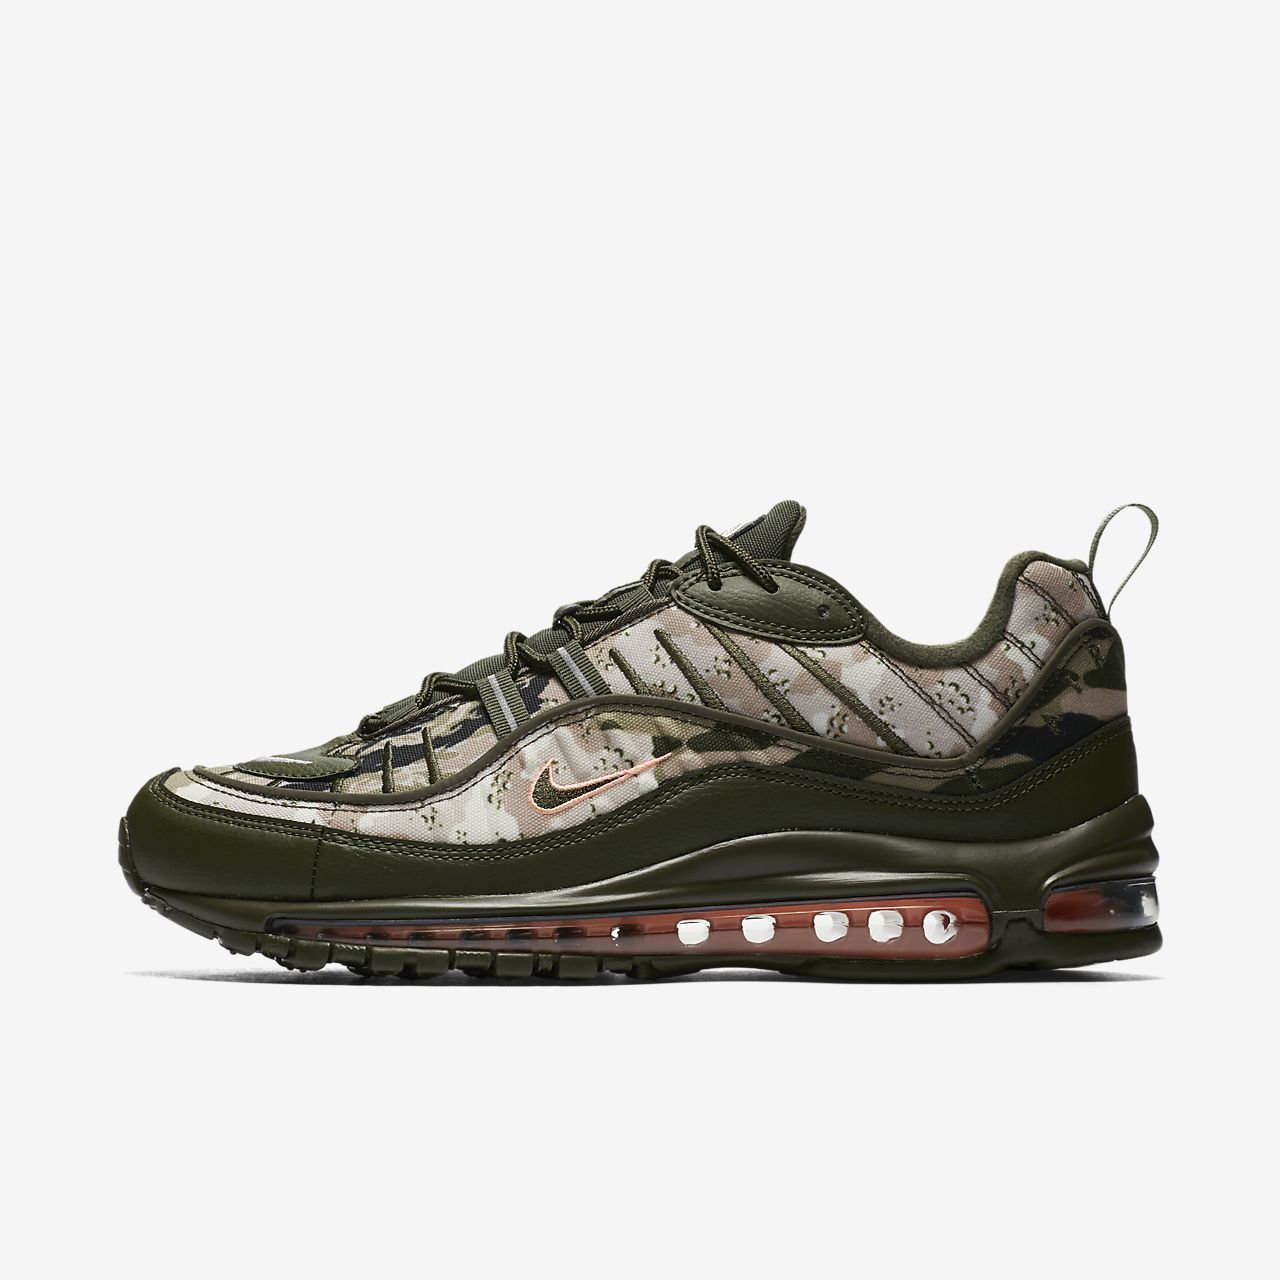 premium selection 0bbbf b89f5 ... Nike Air Max 98 Men s Shoe